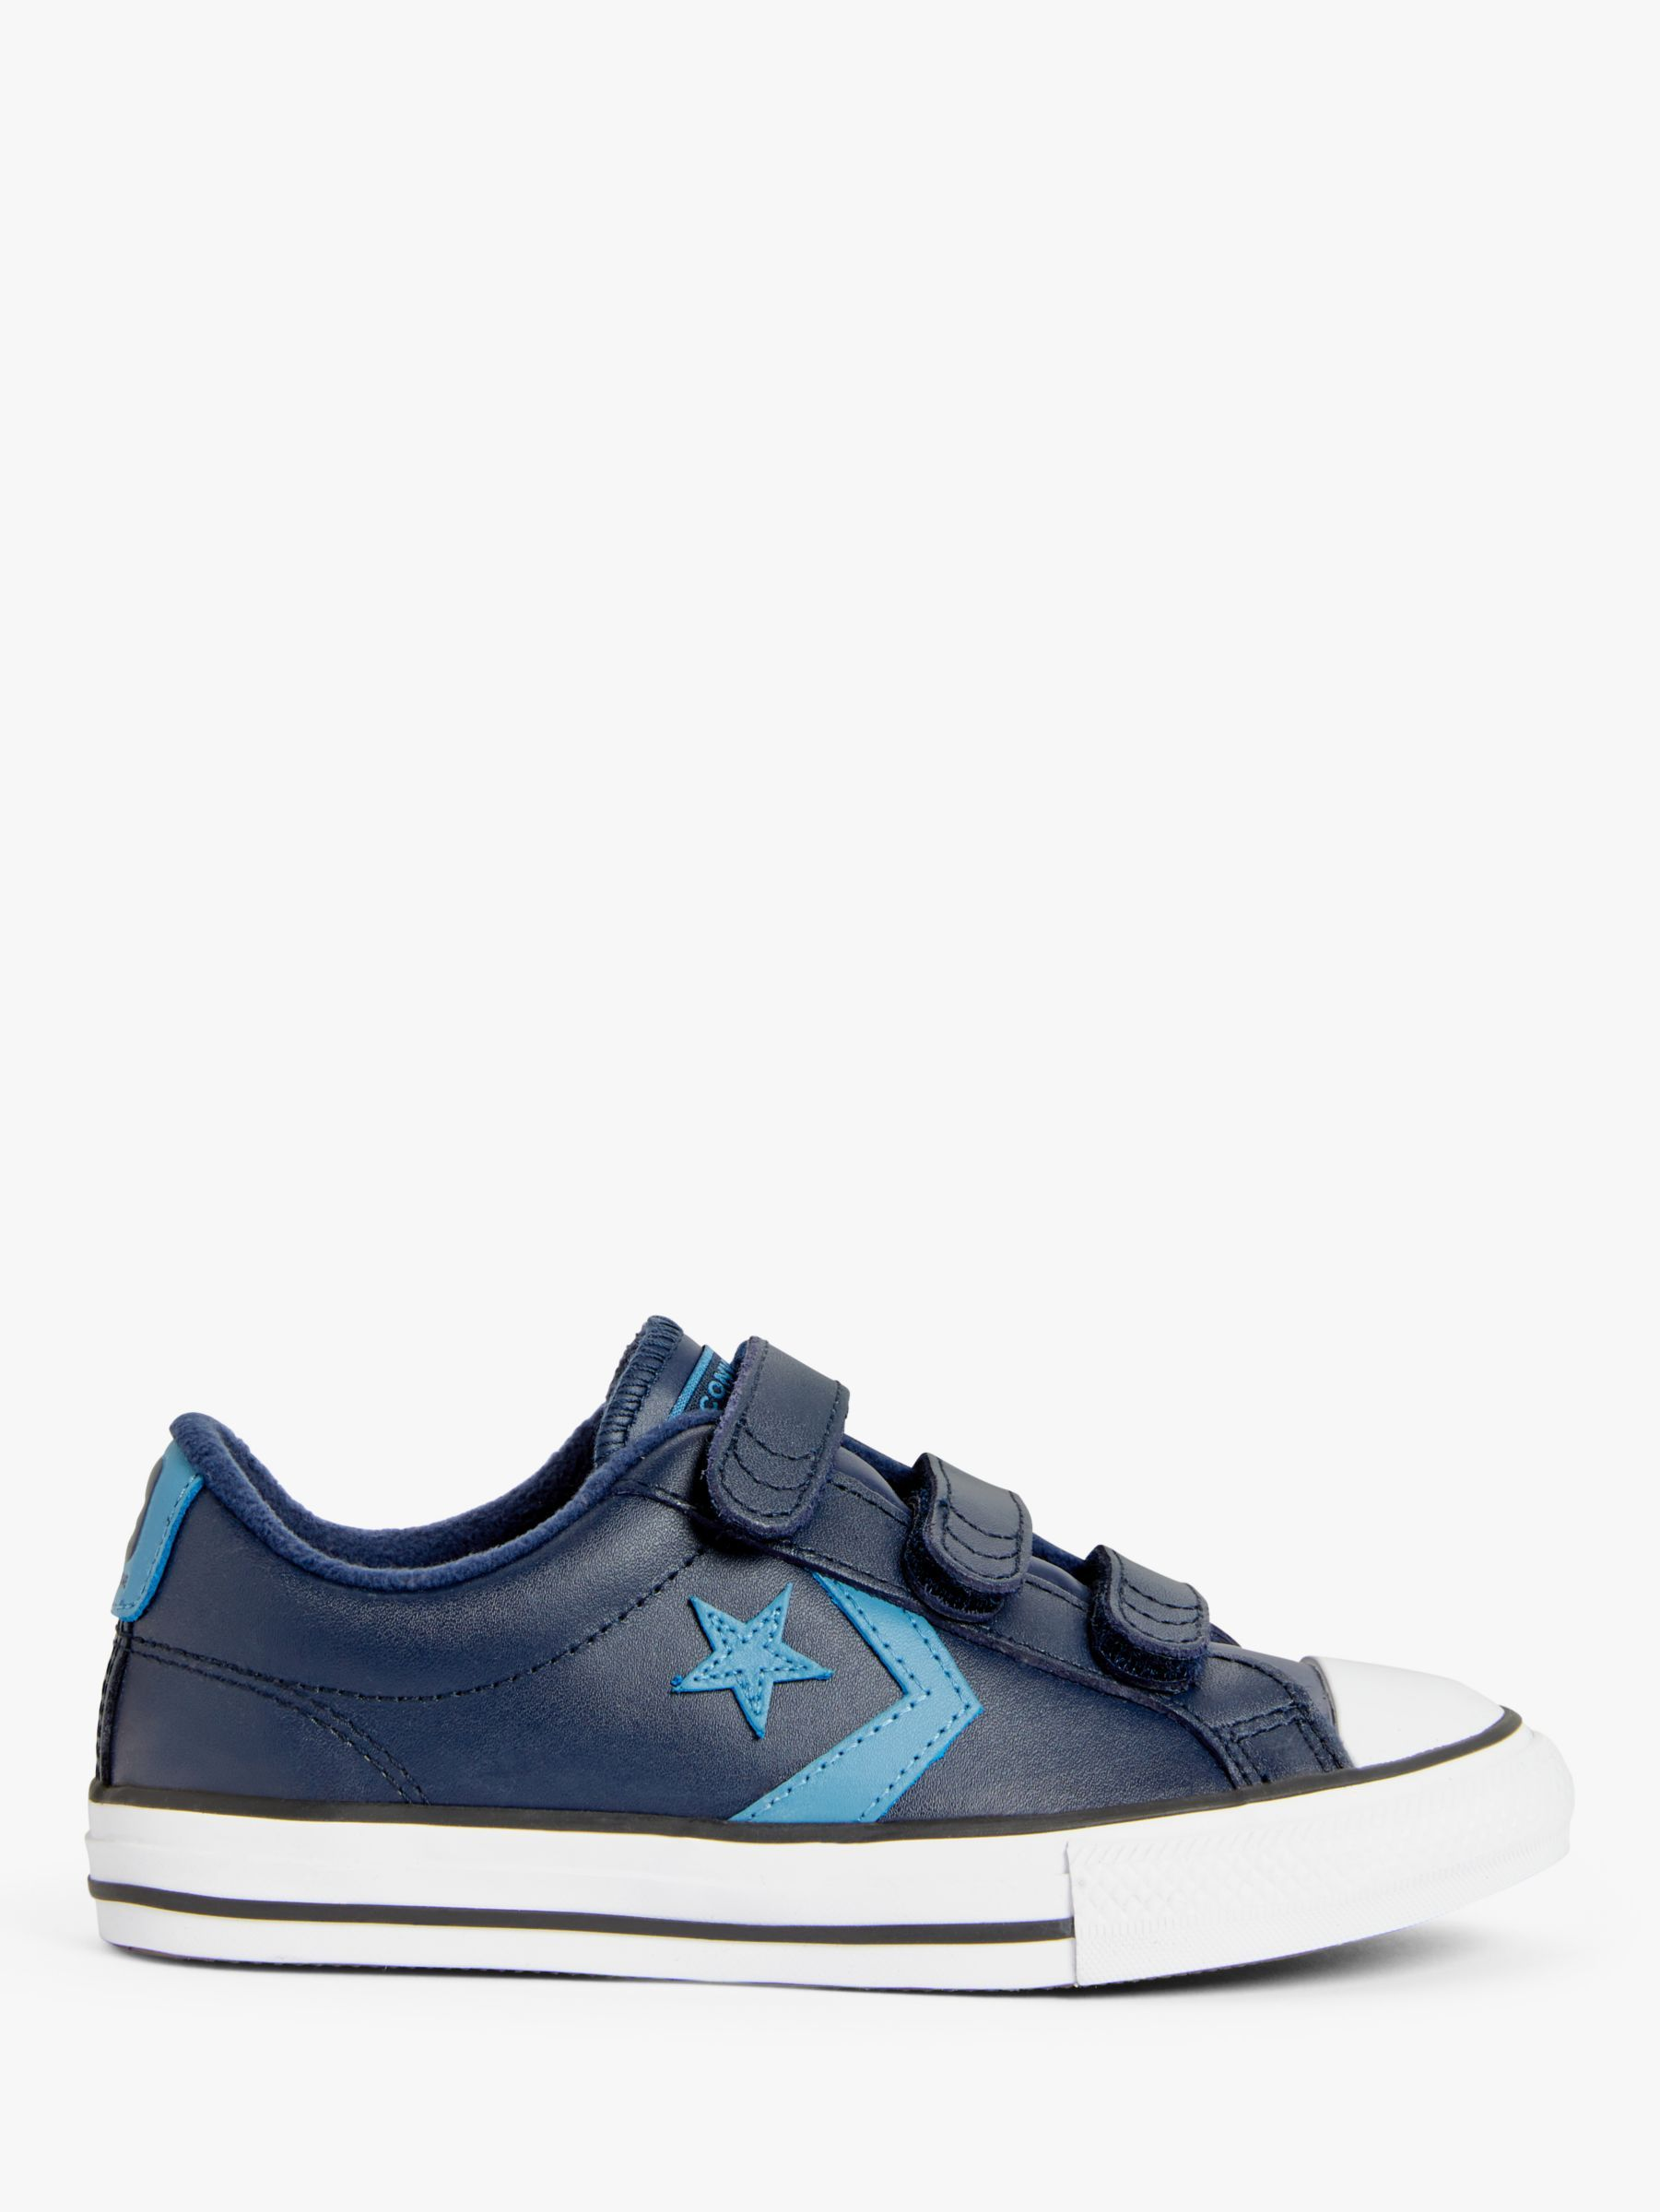 Converse Children's Star Player 3V Leather Trainers, Obsidian Aegan